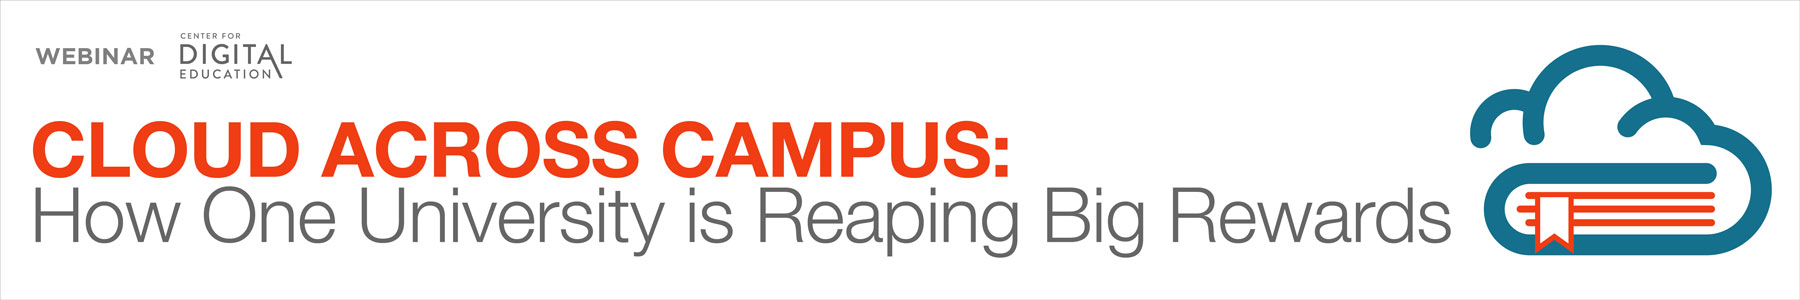 Cloud Across Campus: How One University is Reaping Big Rewards